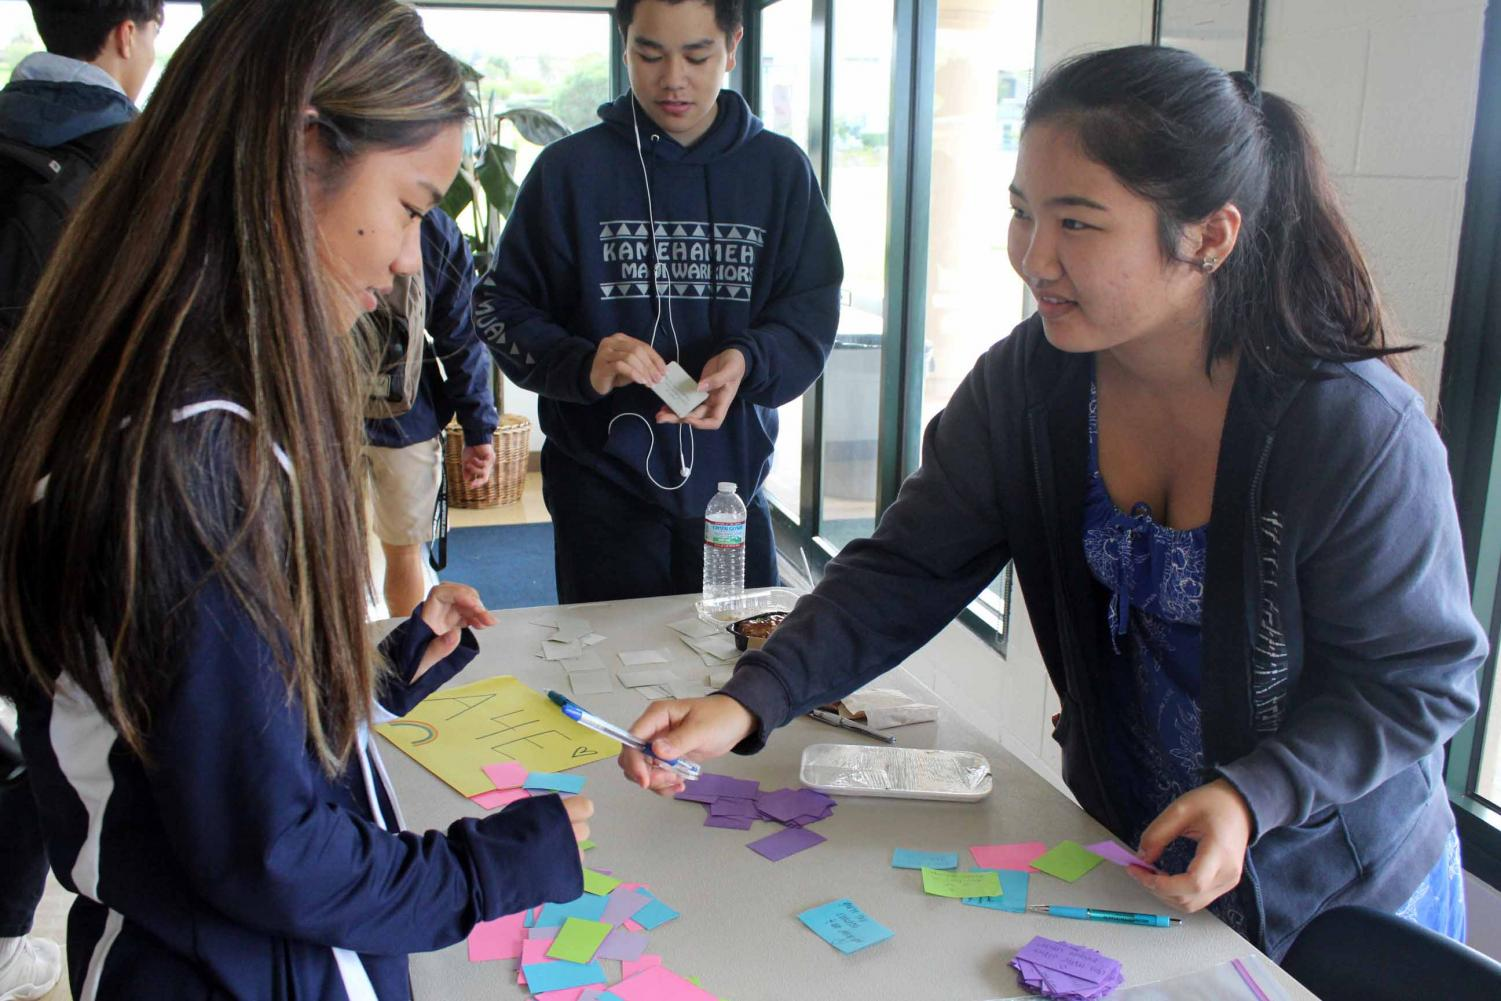 Allies for Equality president Sherri Nagamine hands a compliment to senior Kennedy-Kainoa Tamashiro. Nagamine and A4E honored National Compliment Day by handing out compliments to students in the dining hall, Jan. 24.